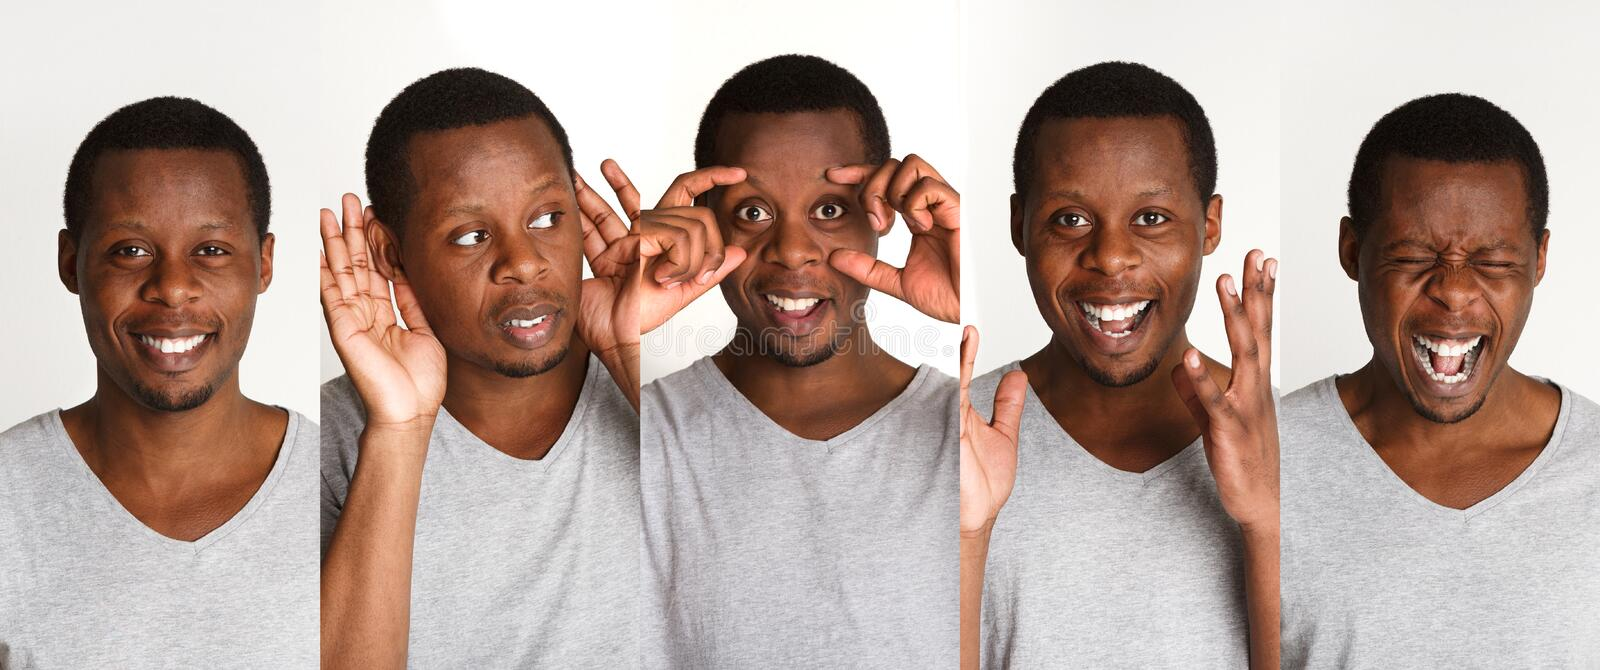 Set of black man`s portraits with different emotions stock photography